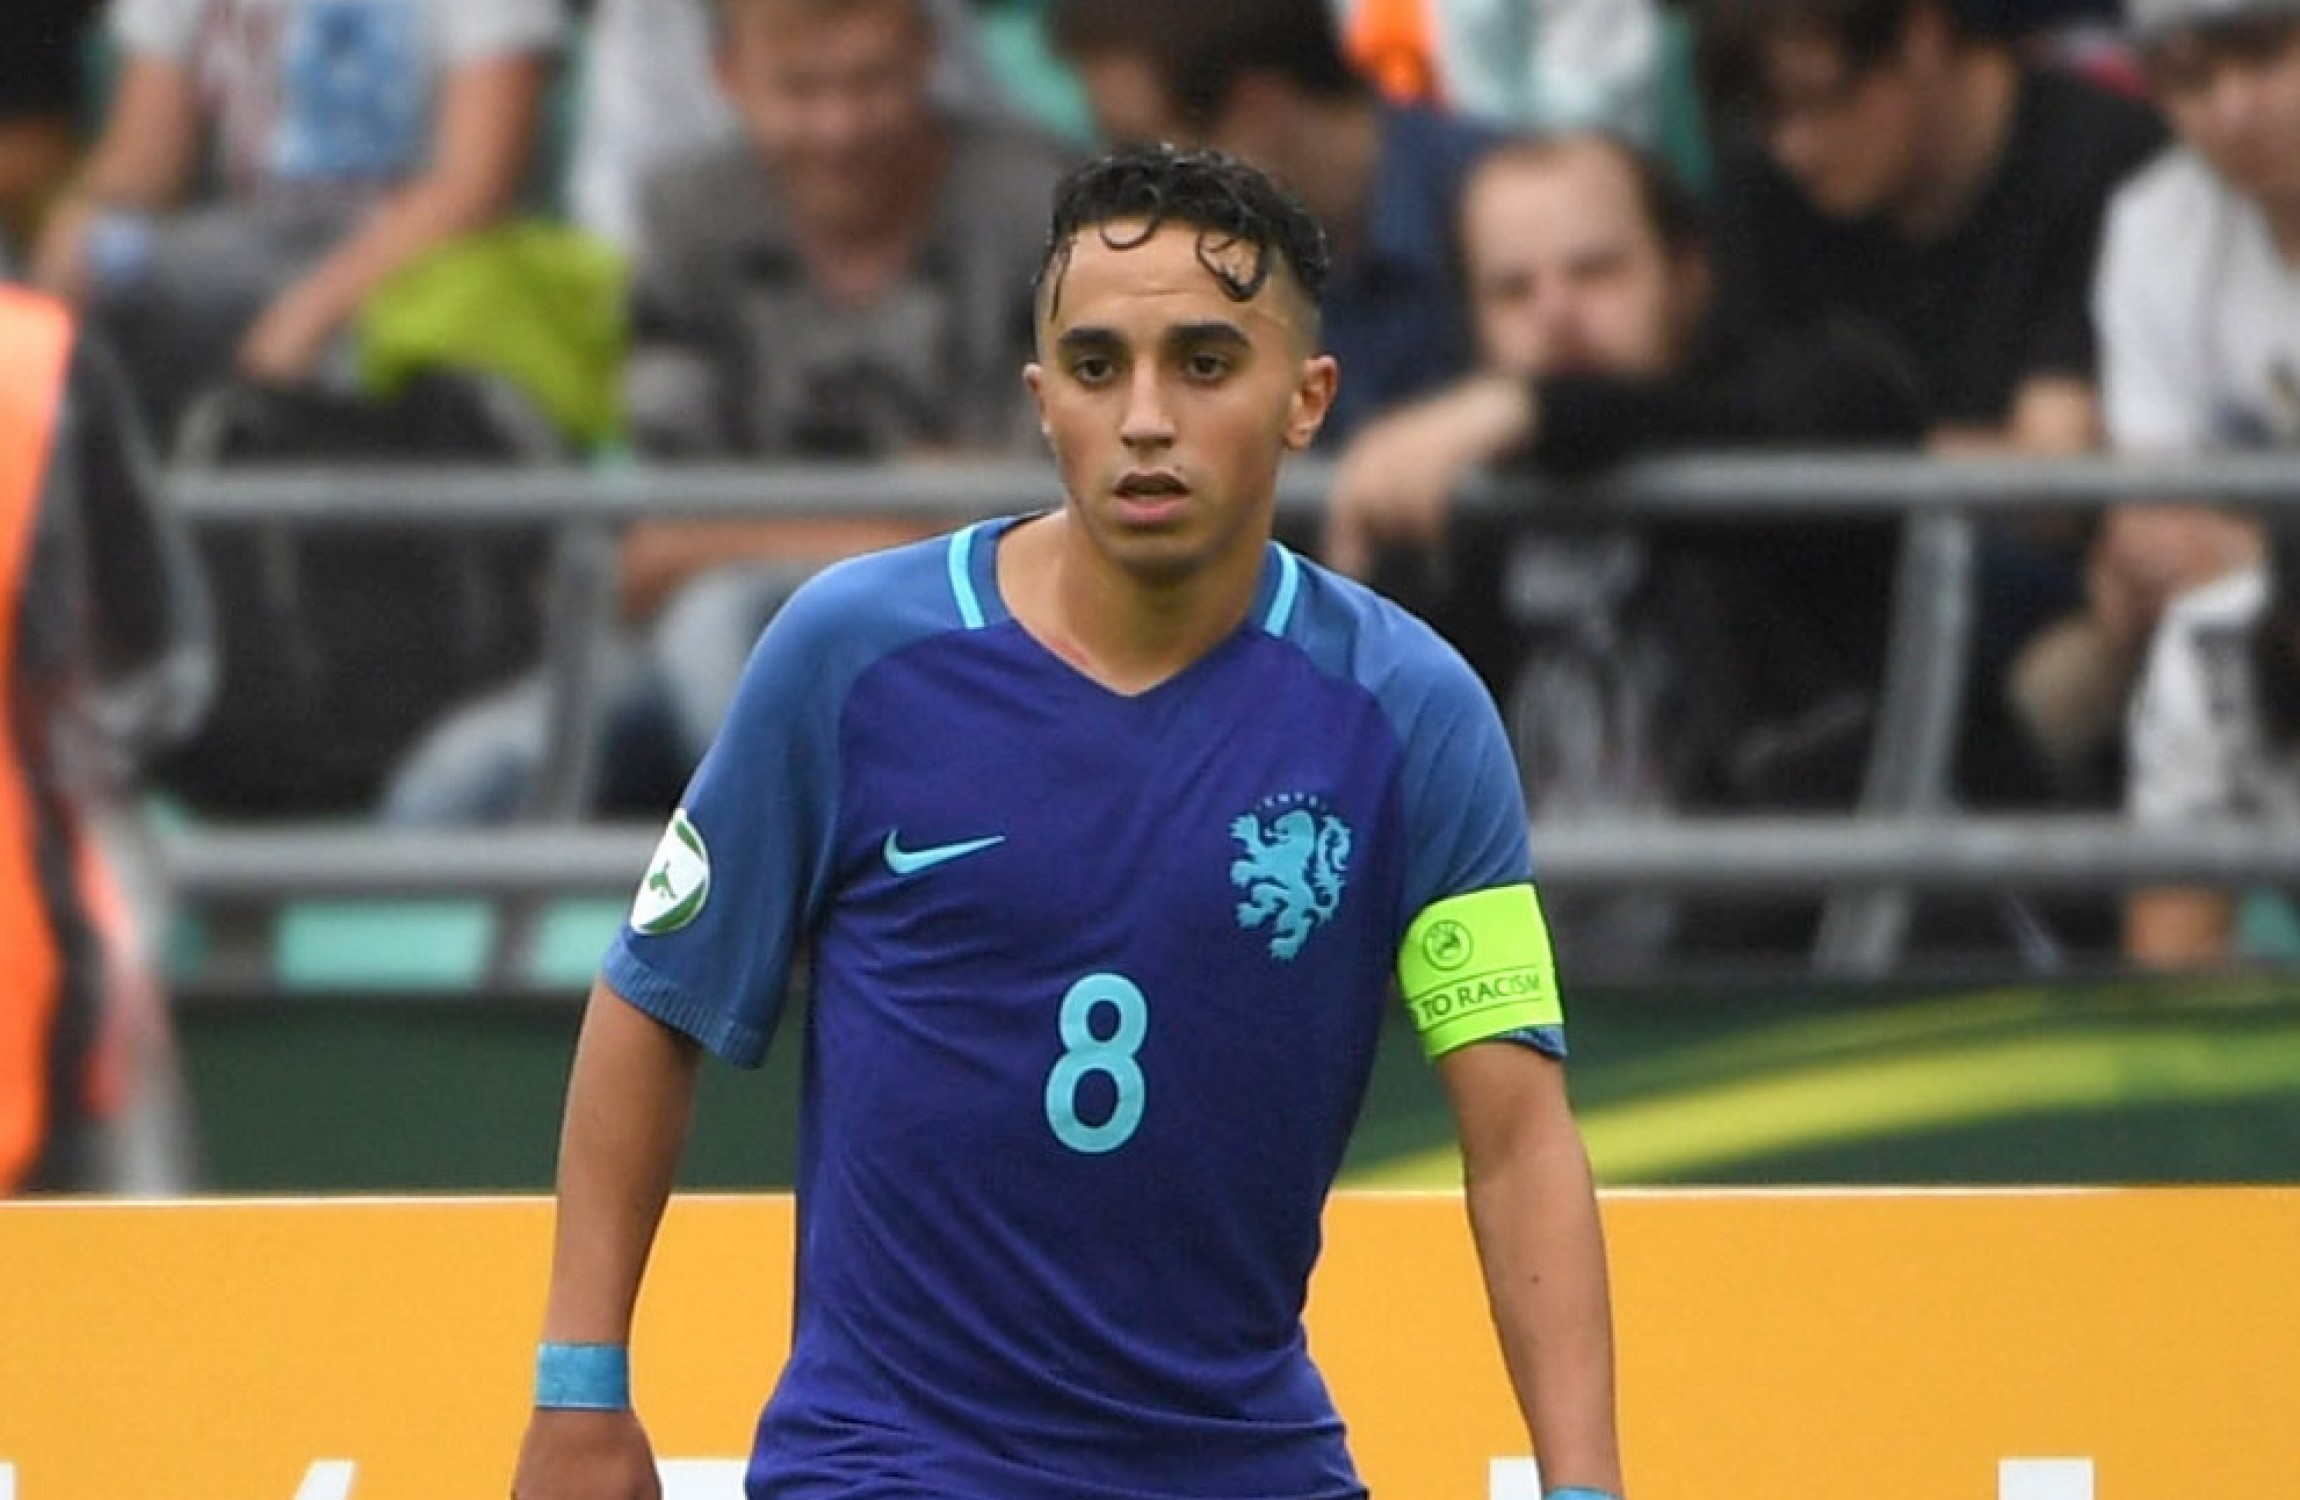 Ajax midfielder Abdelhak Nouri's brain damage 'serious and permanent'